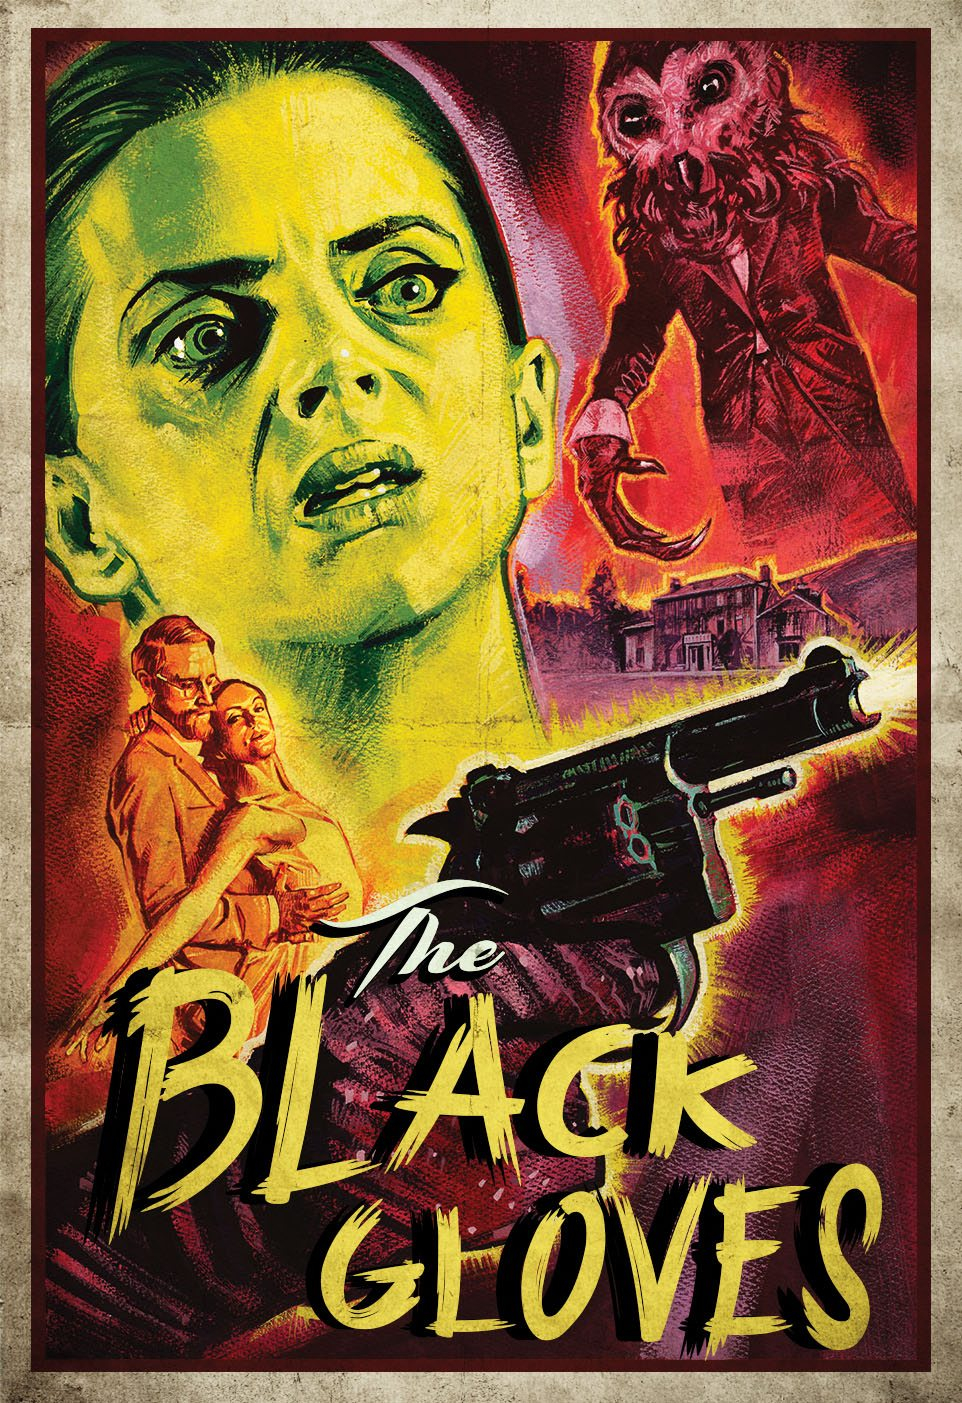 Scottish Chiller 'The Black Gloves' to Première at FrightFest This Halloween